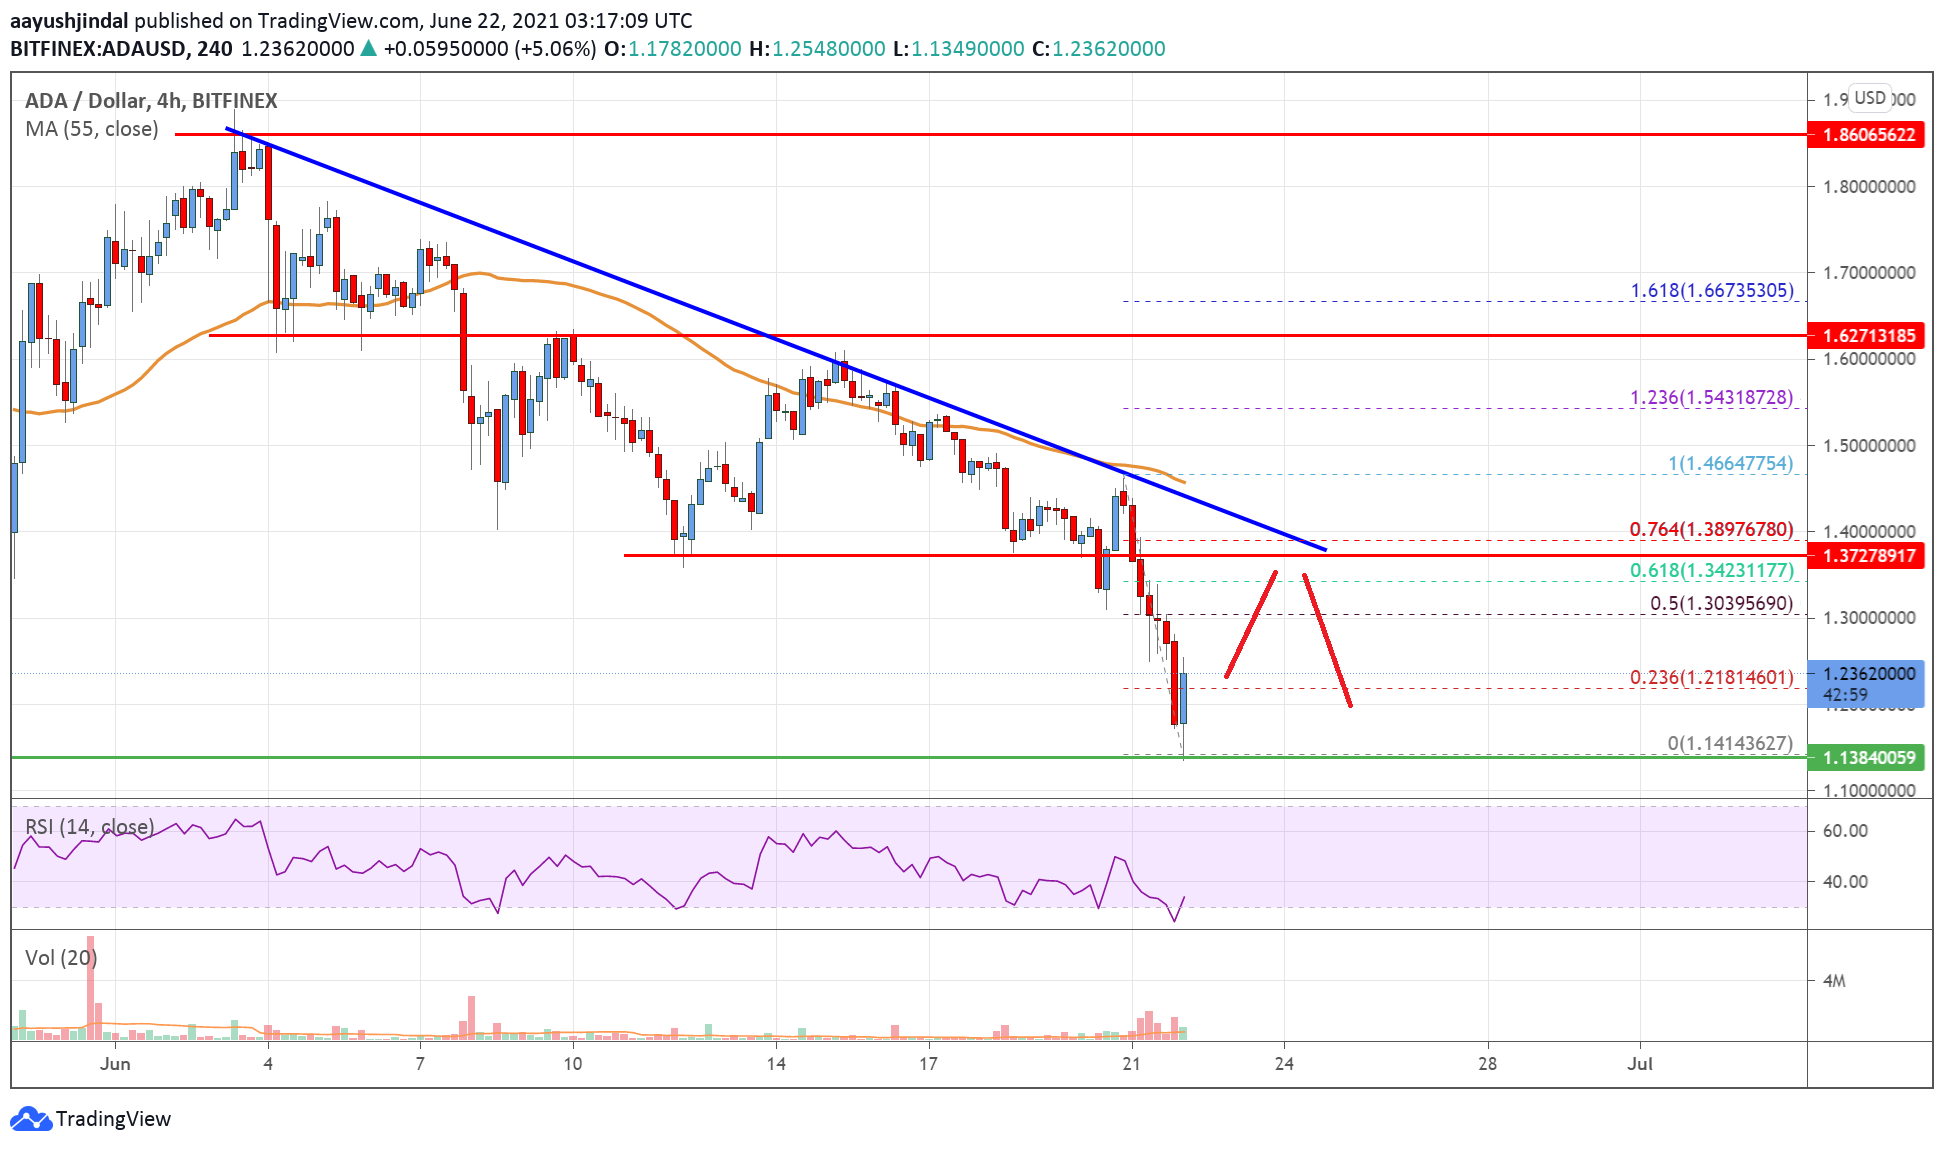 Cardano (ADA) Price Analysis: Recovery Could be Capped Near $1.40 | Live Bitcoin News